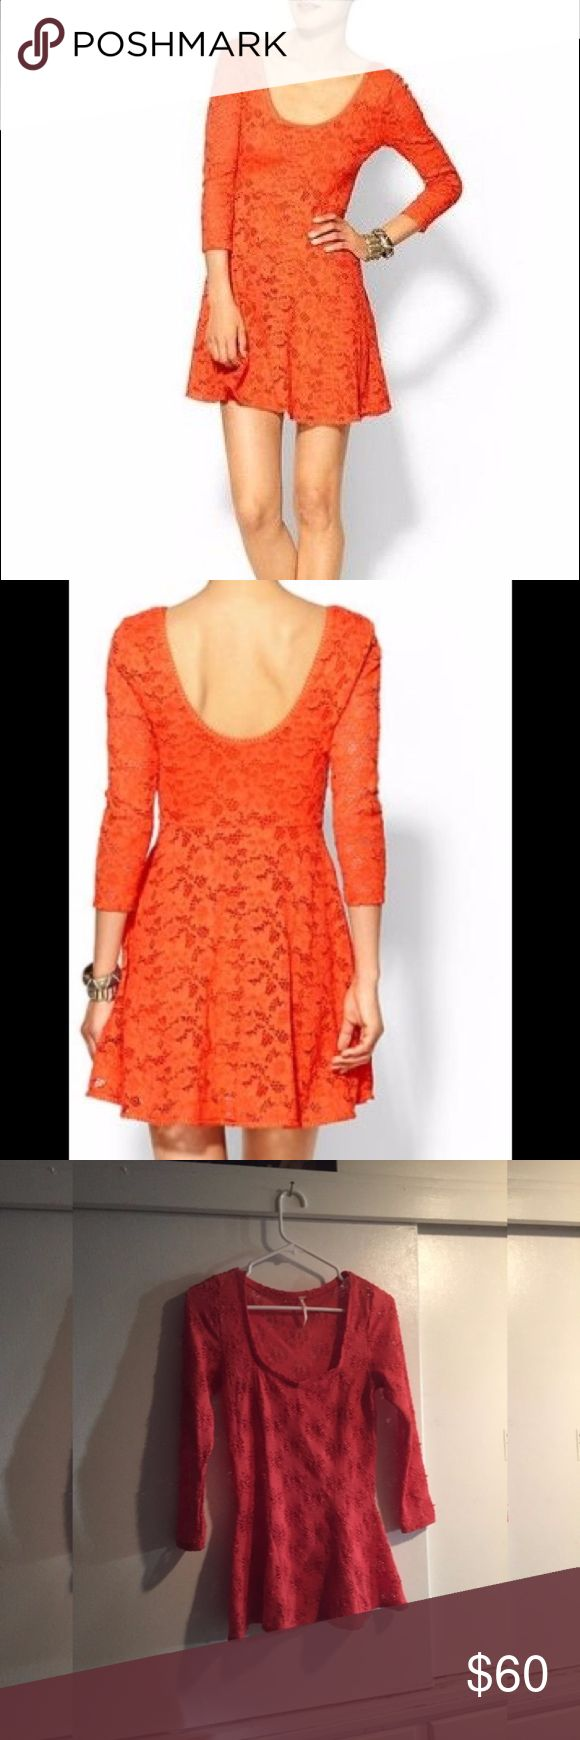 Free People 3/4 sleeve Orange Lace Dress Vibrant, beautiful color. Classy lace dress. Low back, very pretty and a hint of sexy :) fitted but stretchy, easy care. Sold out everywhere. Free People Dresses Mini